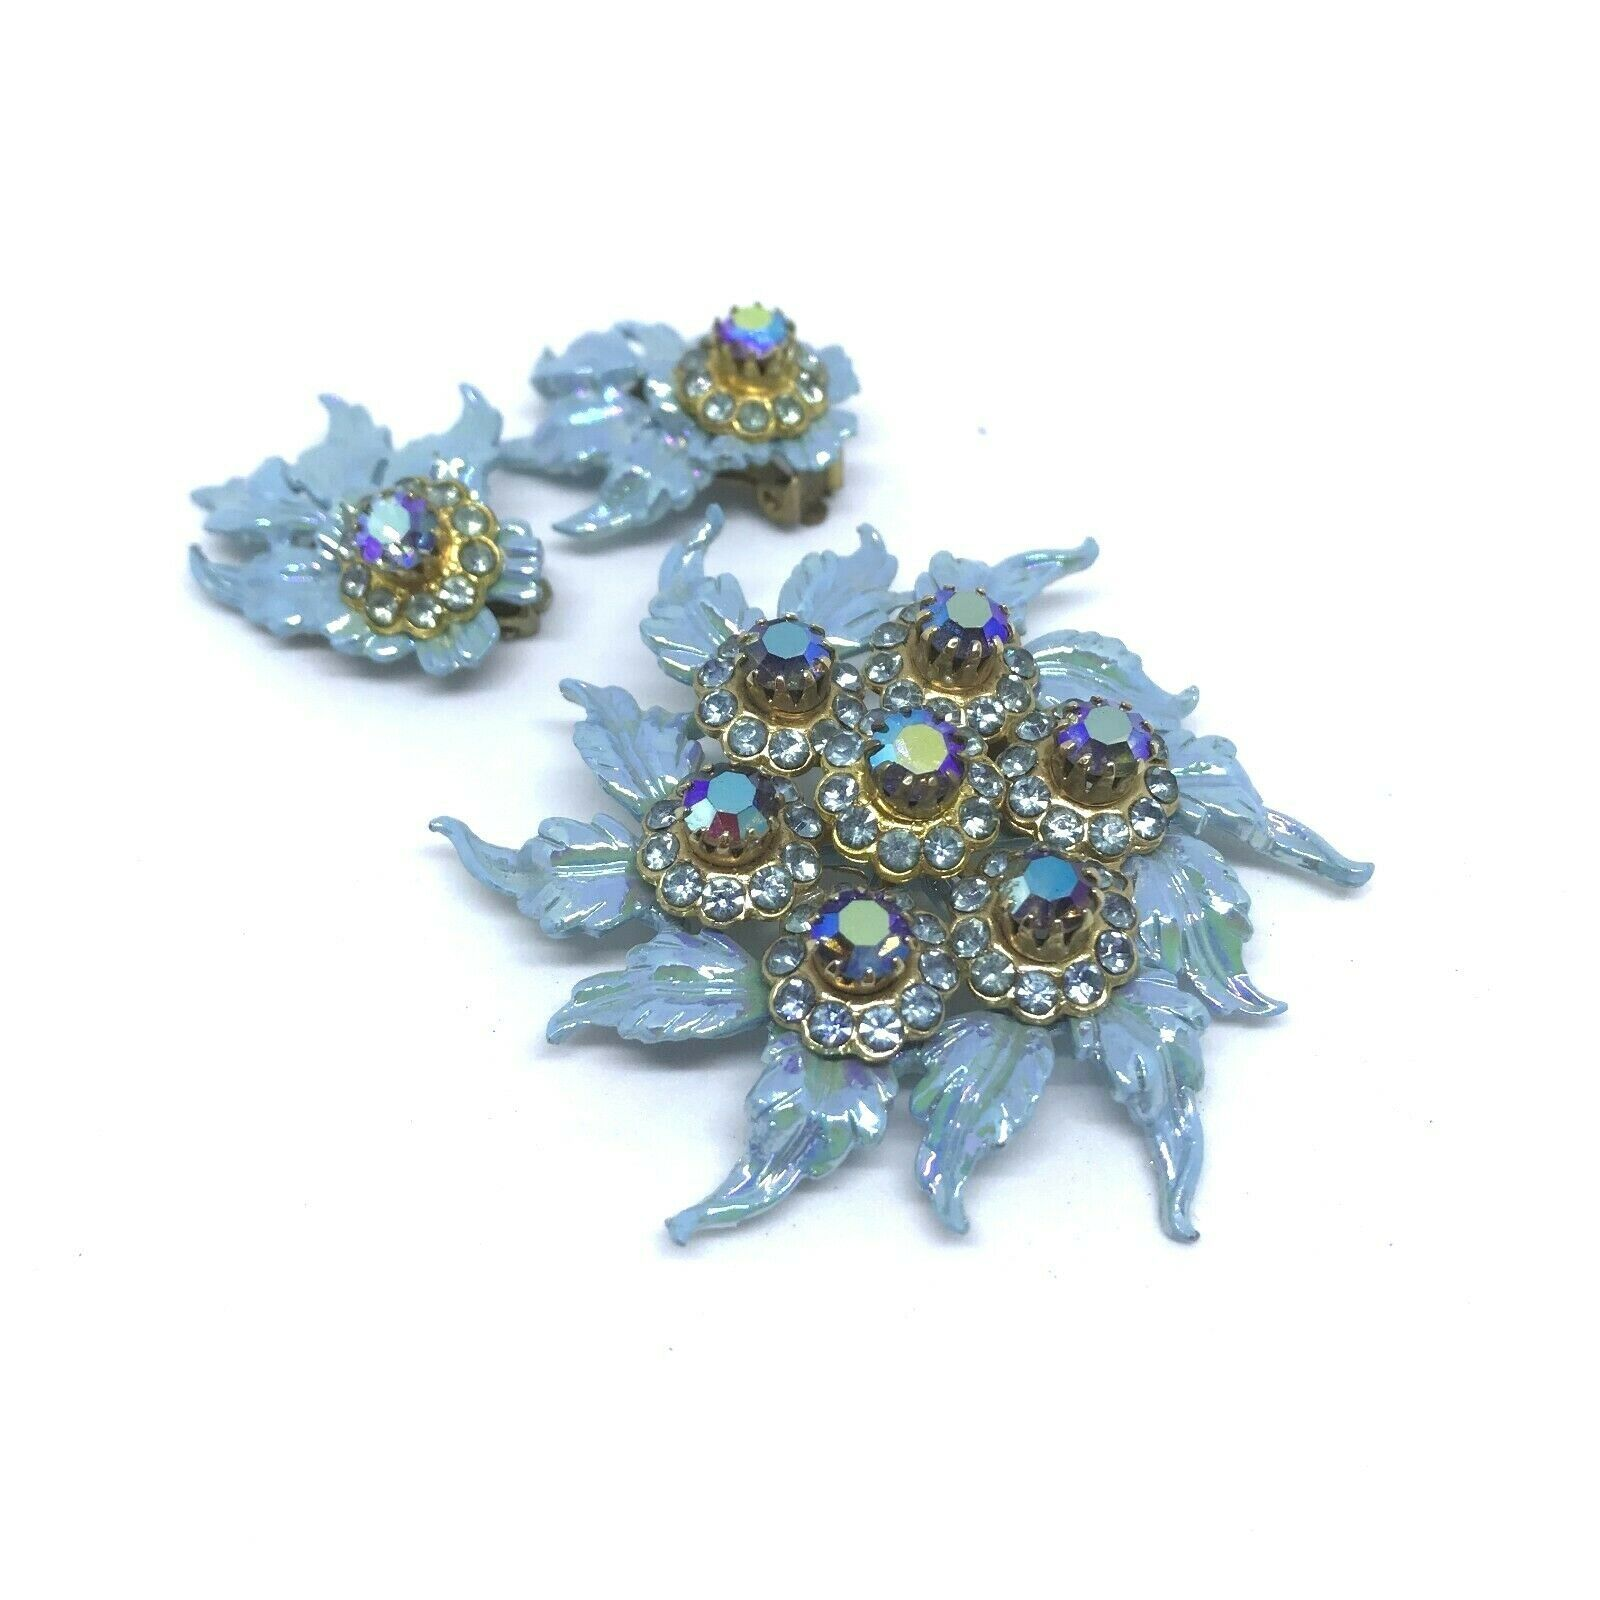 Primary image for Vintage 60s Selini Rhinestone Brooch Clip On Earring Signed Set Blue Enamel